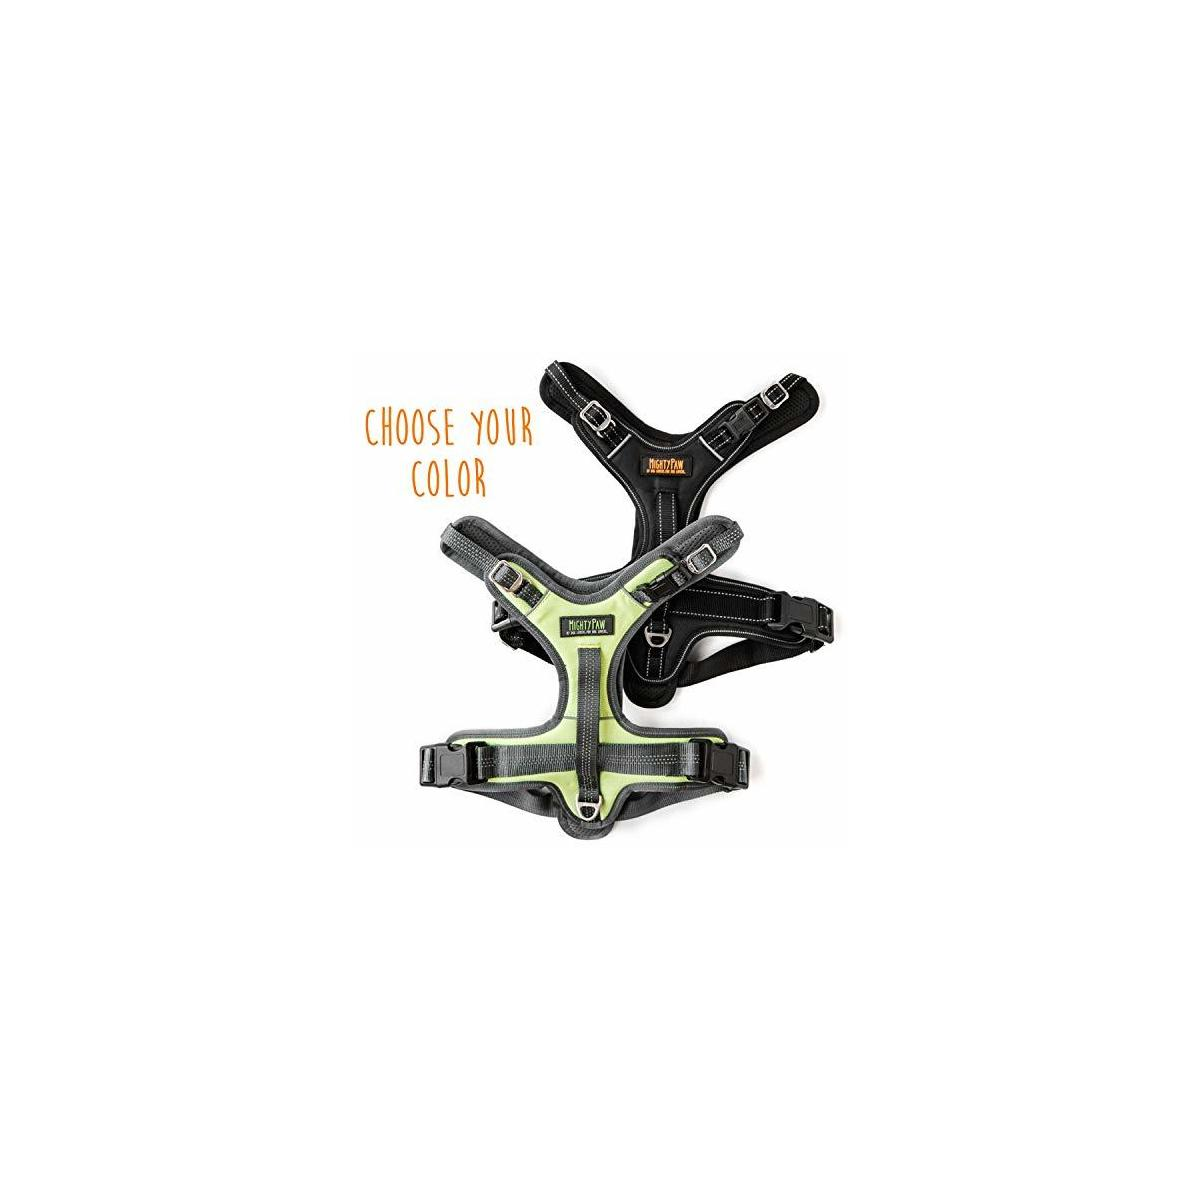 Mighty Paw Dog Sport Harness | No Pull Harnesses with Two Leash Attachments, Comfortable Neoprene Padded Lining, Reflective Safety Stitching. Fully Adjustable for a for Large or Small Pets